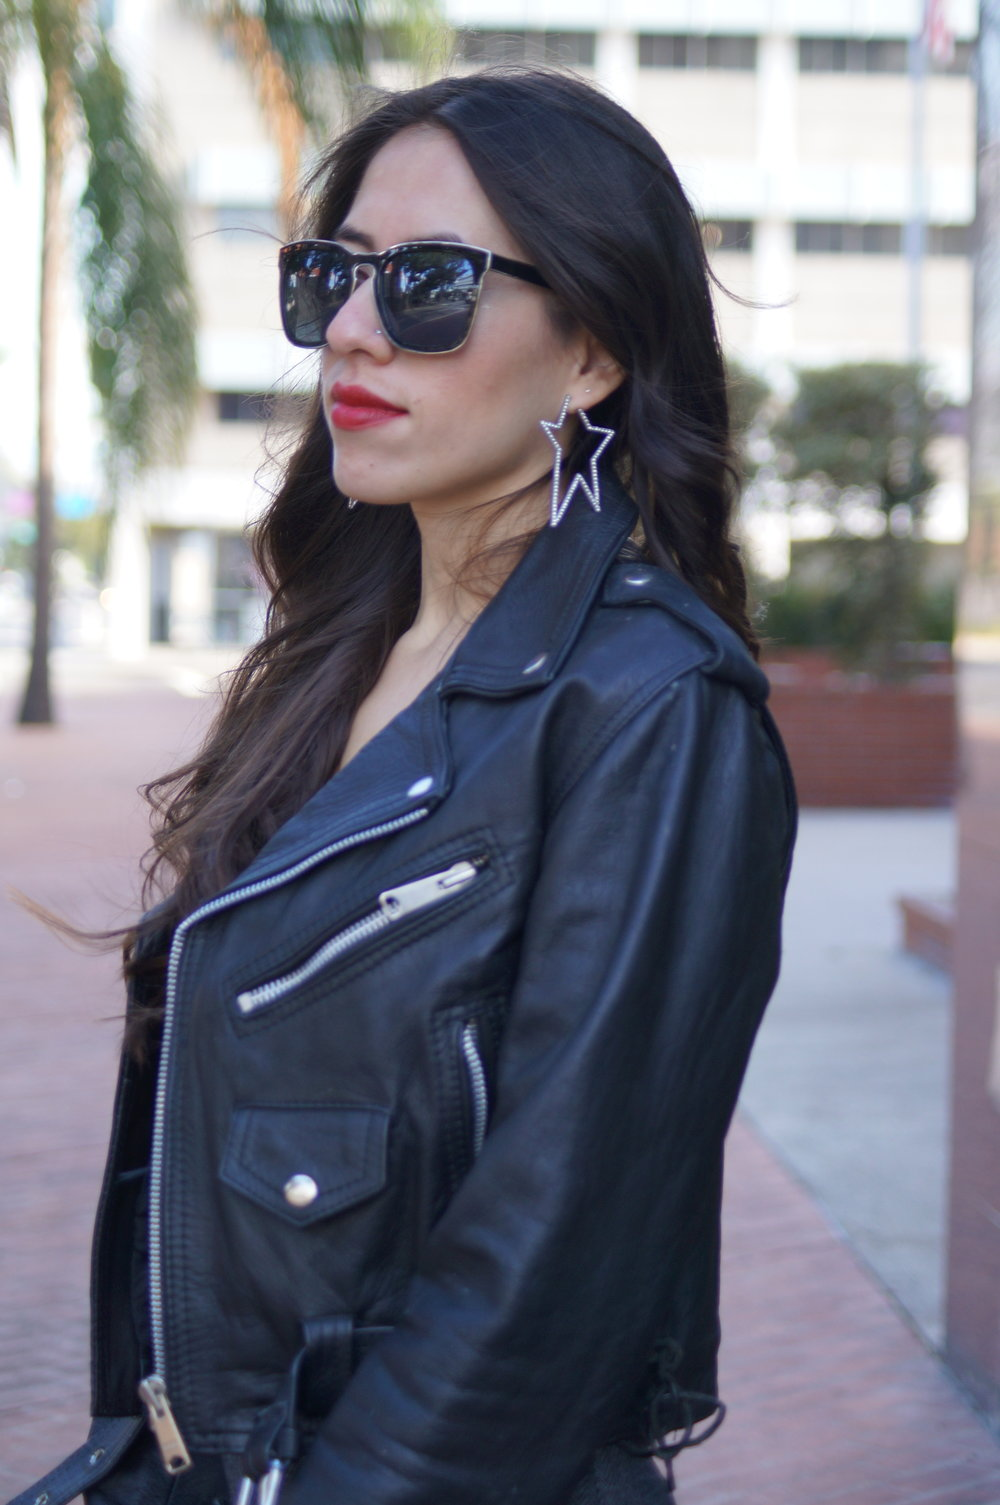 Leather Motto Jacket